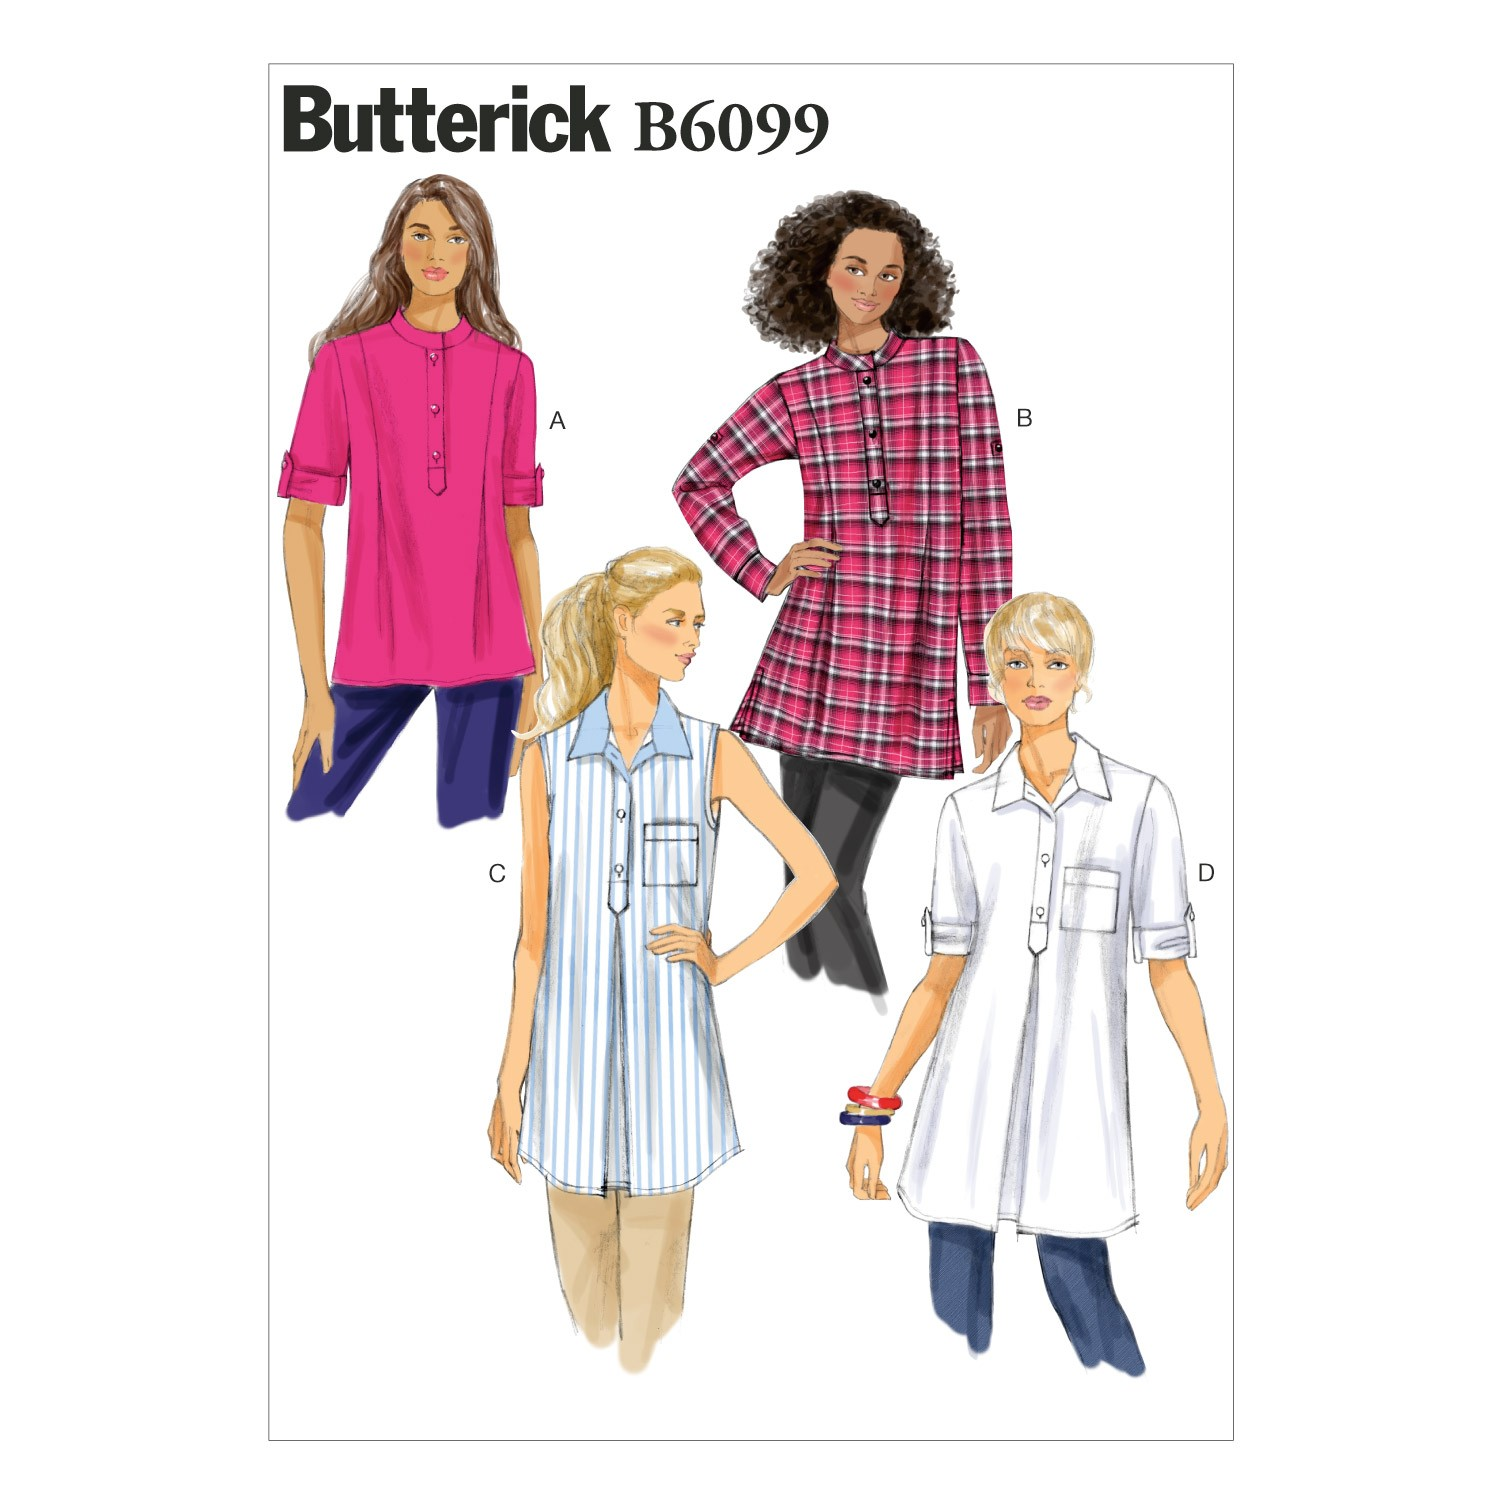 Butterick Sewing Pattern 6099 Misses' Loose Fitting Tunic